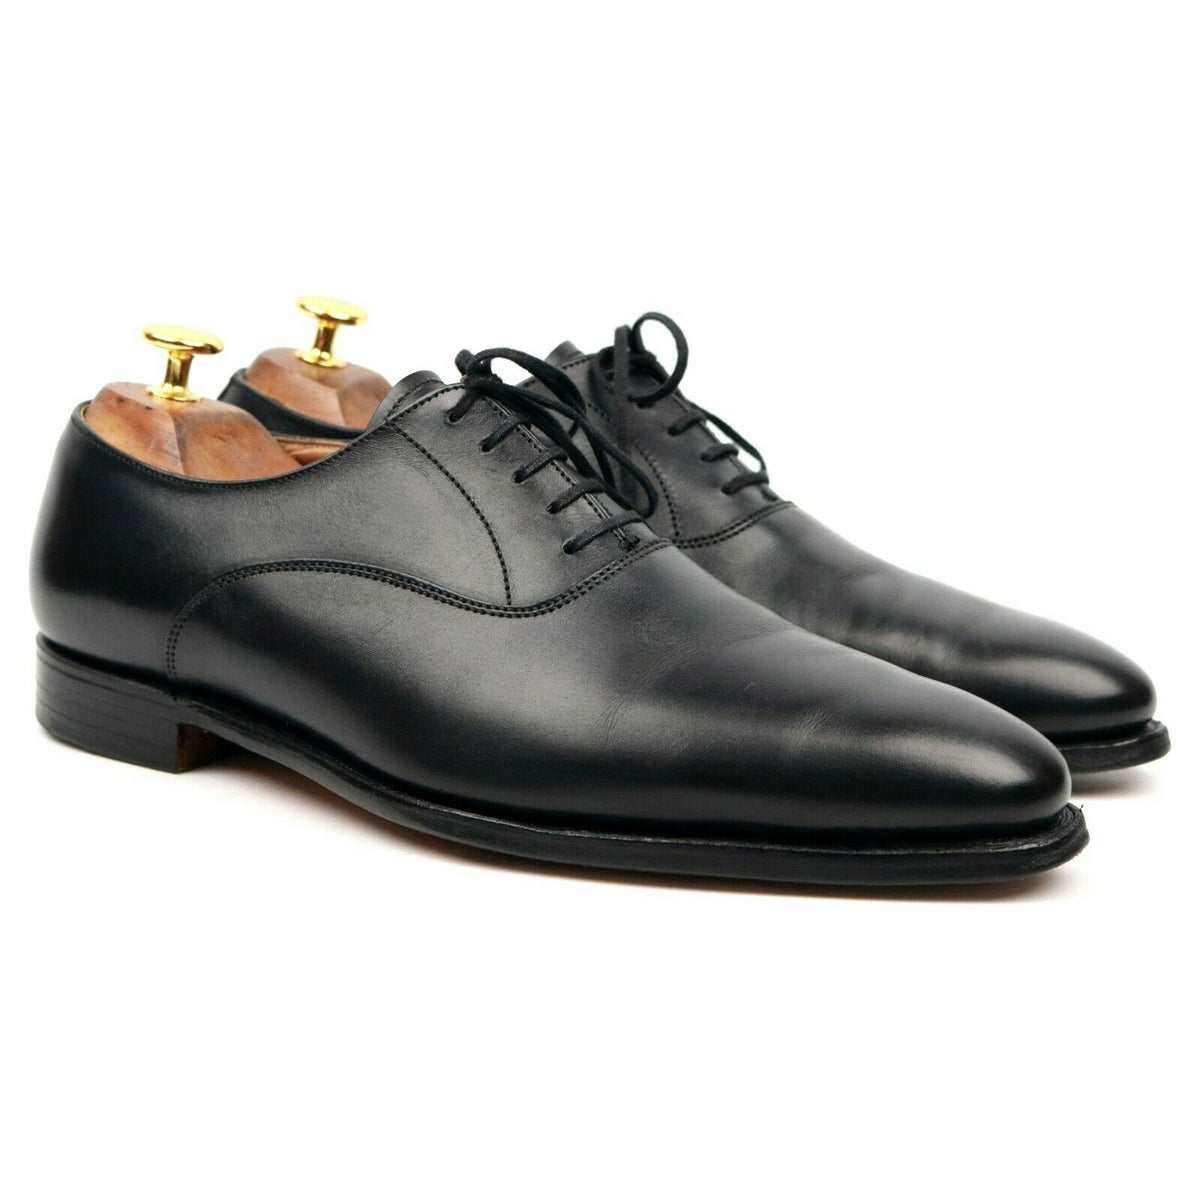 Crockett & Jones 'Wembley' Black Oxford UK 7 E